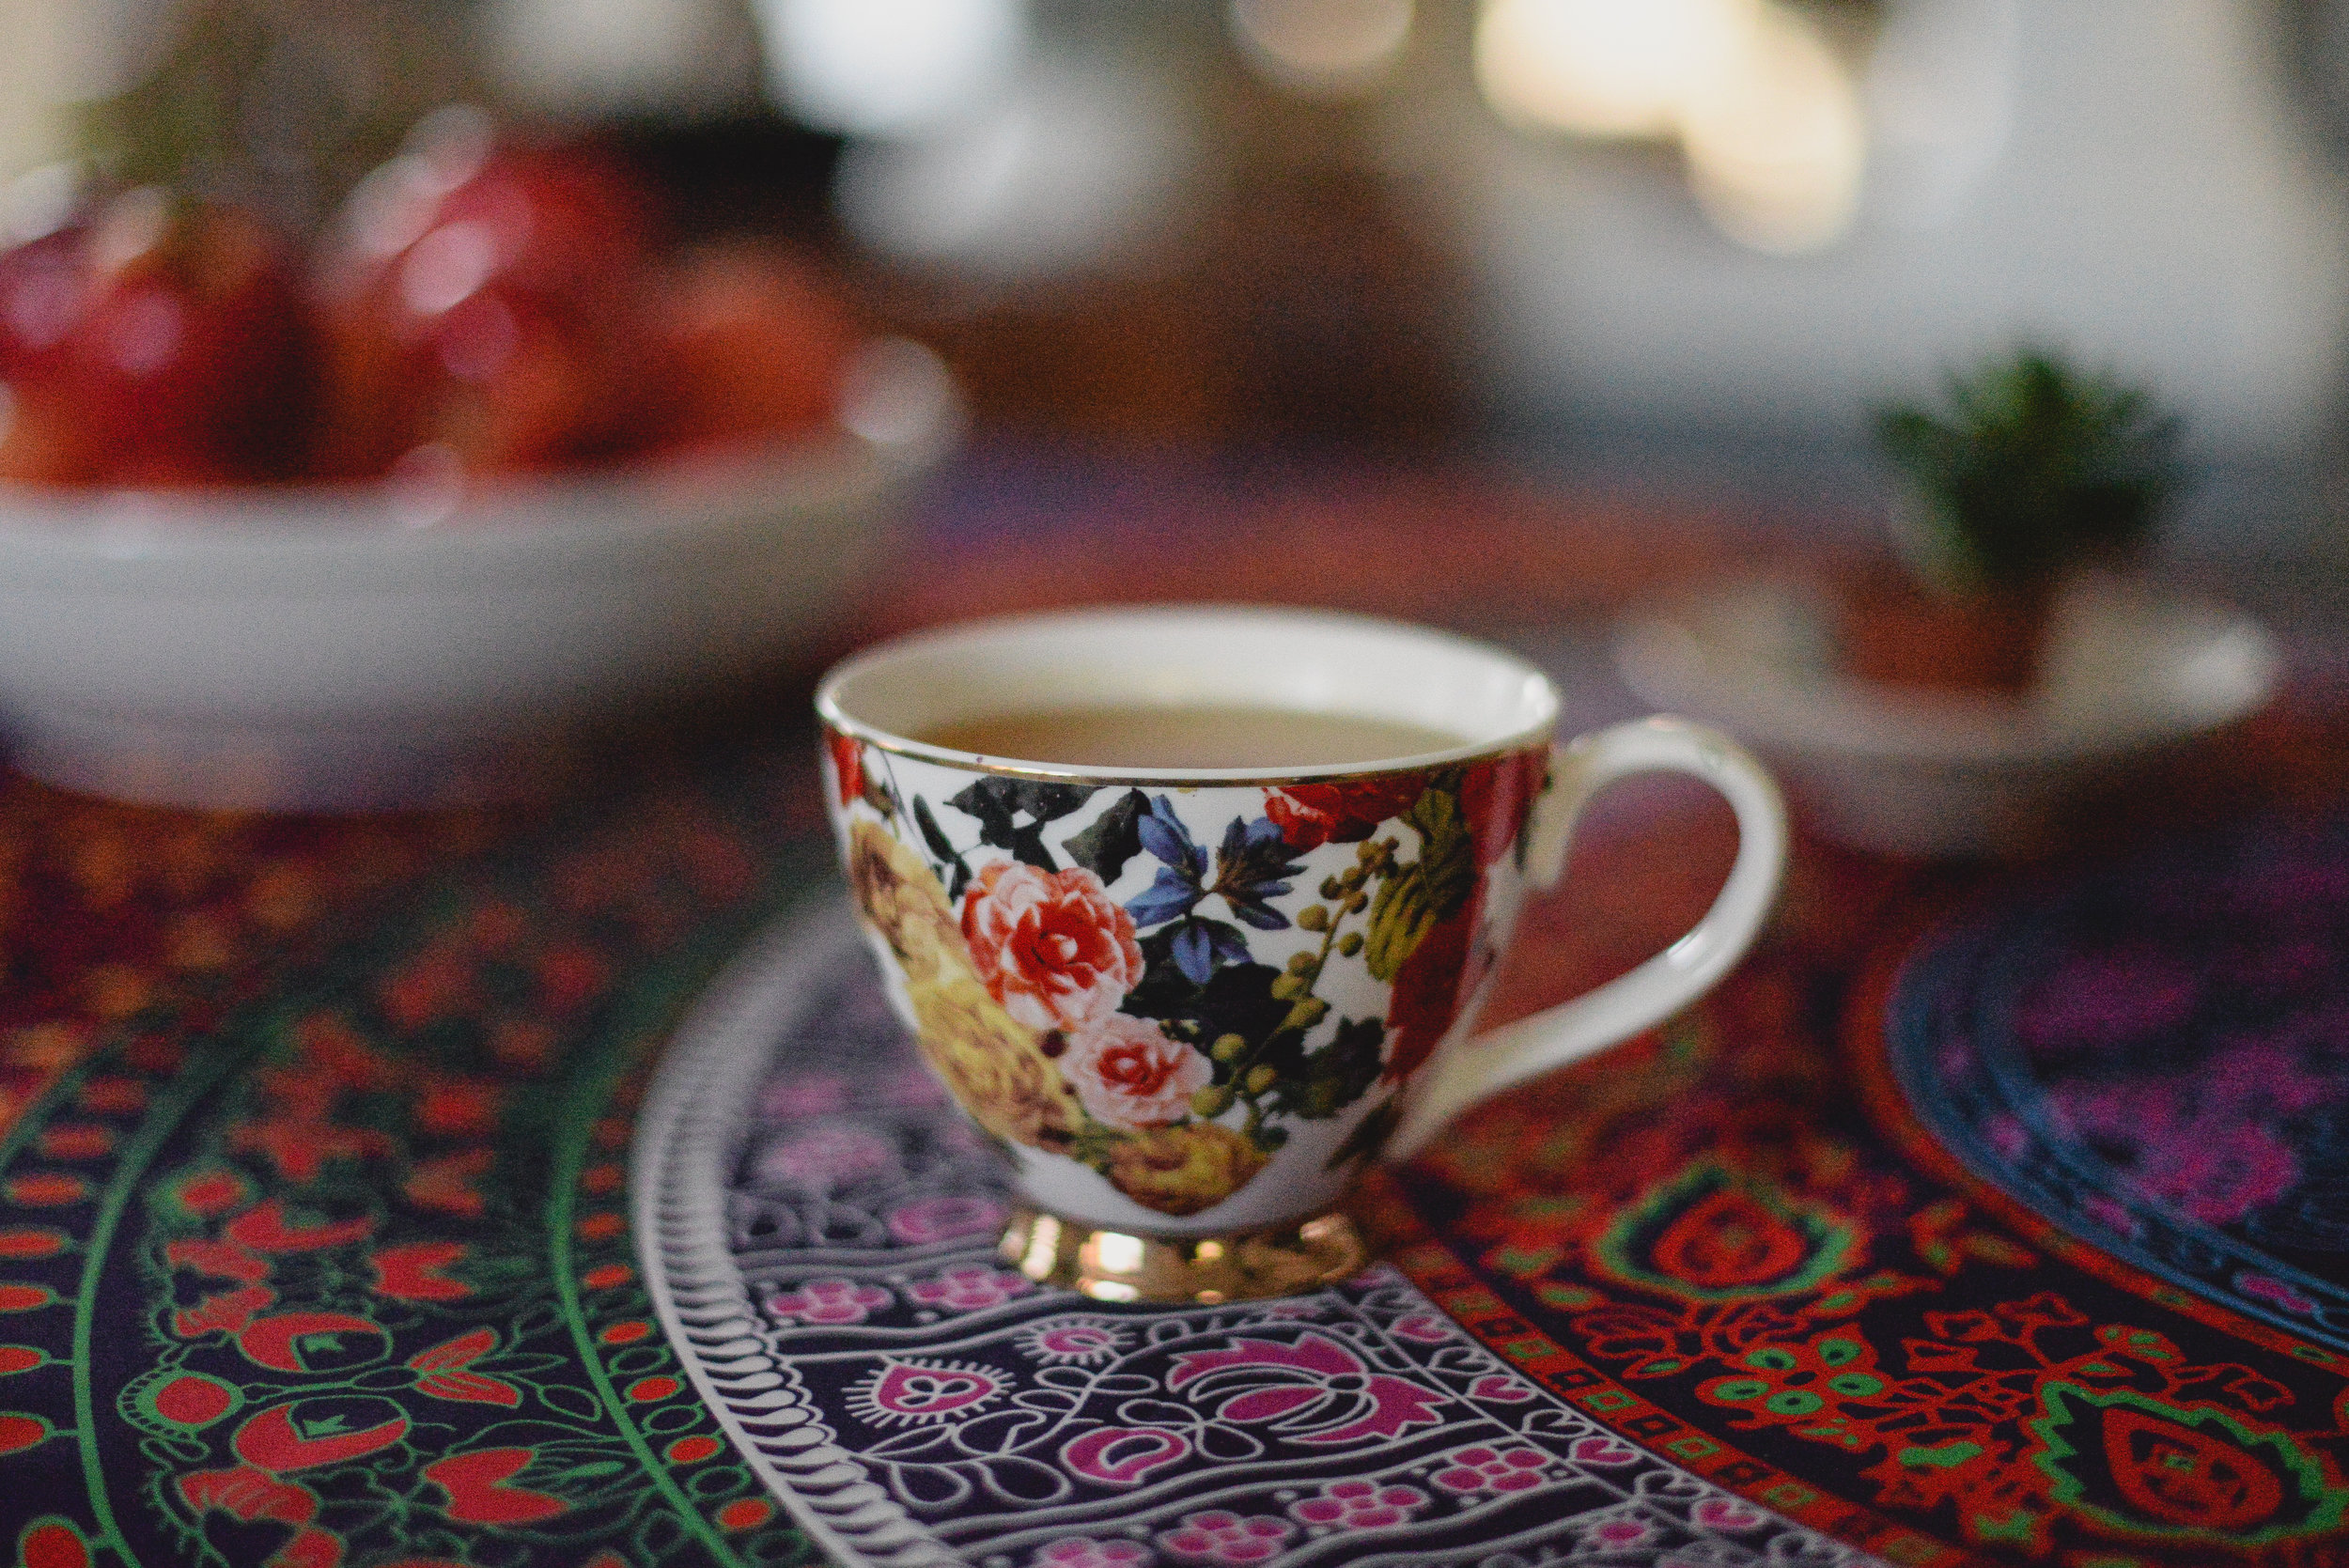 tea and apples